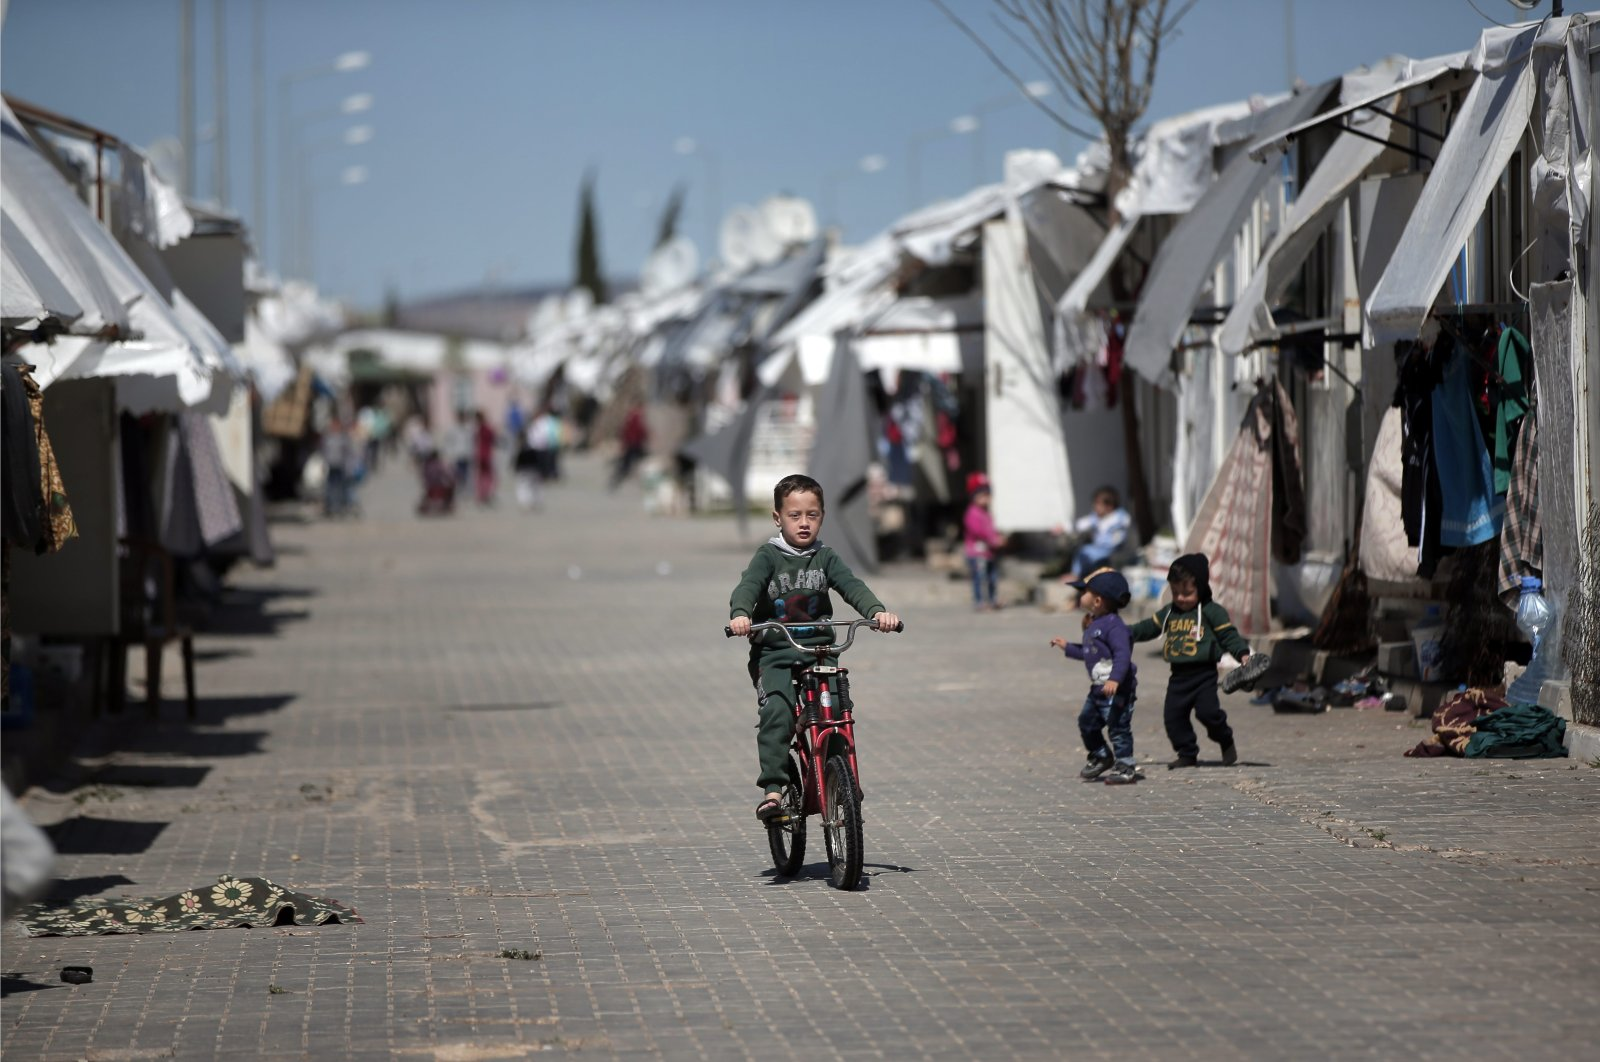 A Syrian refugee child rides his bike at the Öncüpınar Camp for refugees next to the border crossing with Syria in Turkey's Kilis province, March 17, 2016. (AP File Photo)